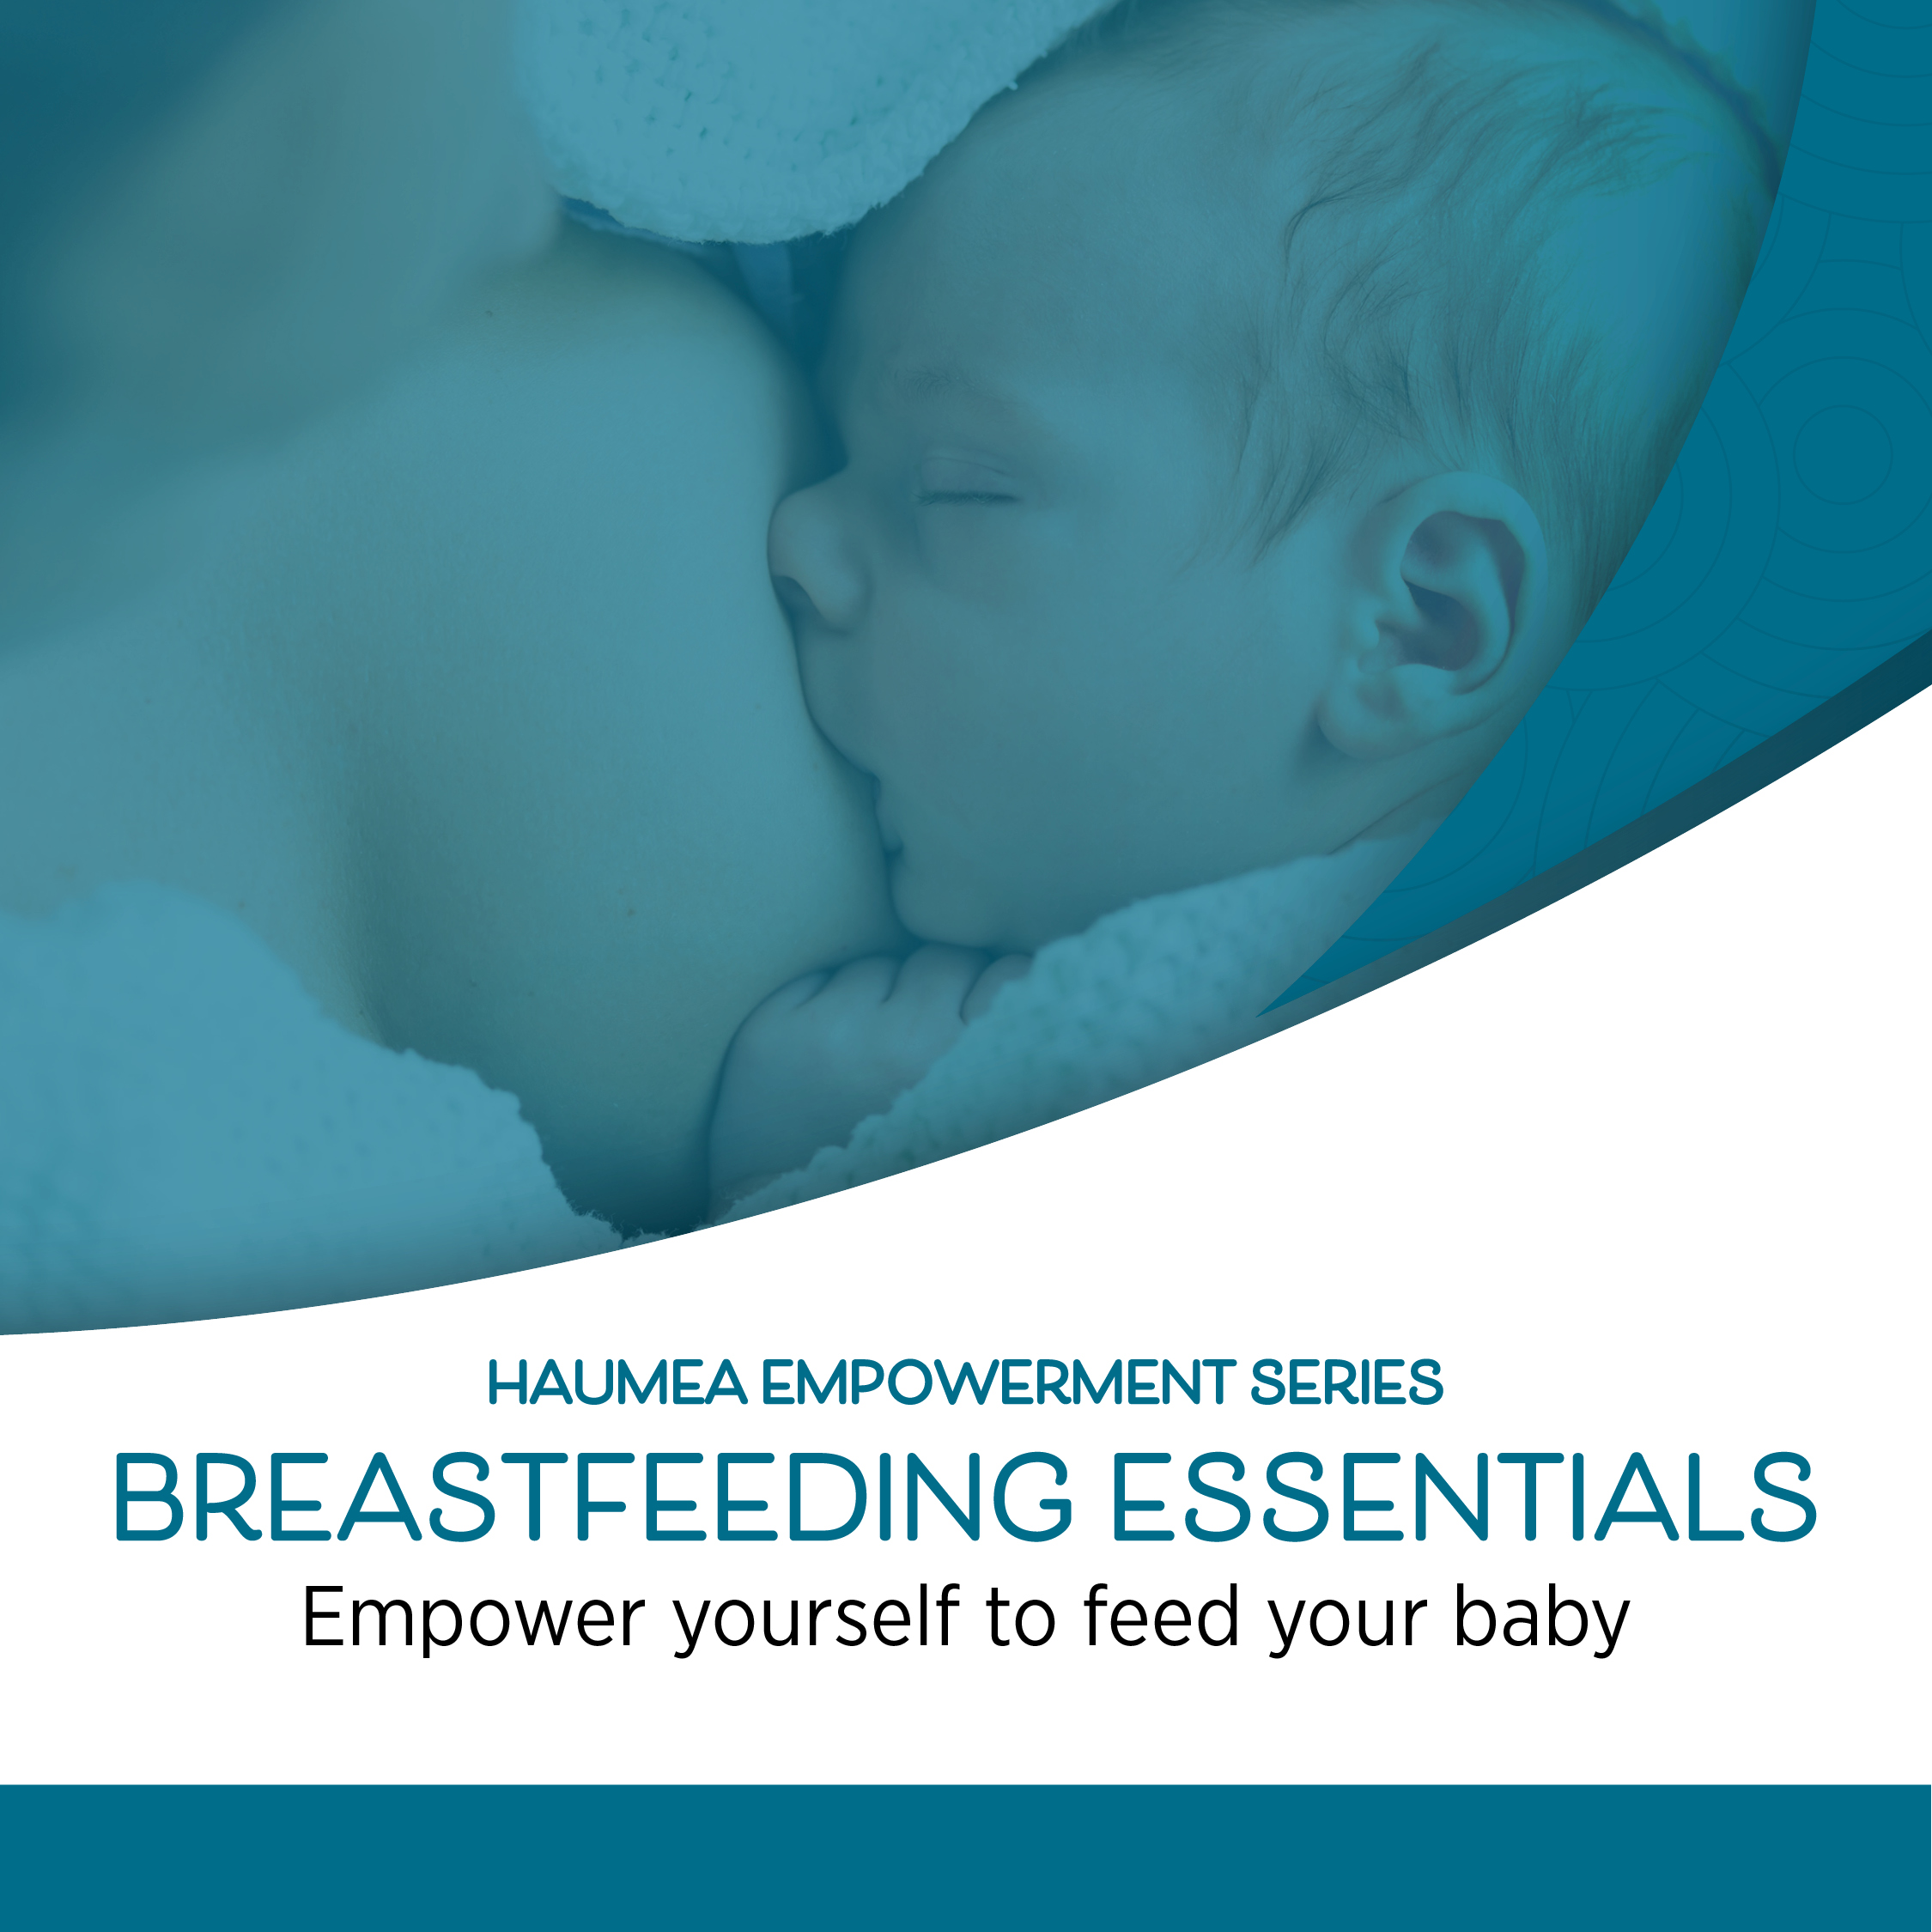 Haumea_2019_Event_Breastfeeding Essentials_Web.jpg